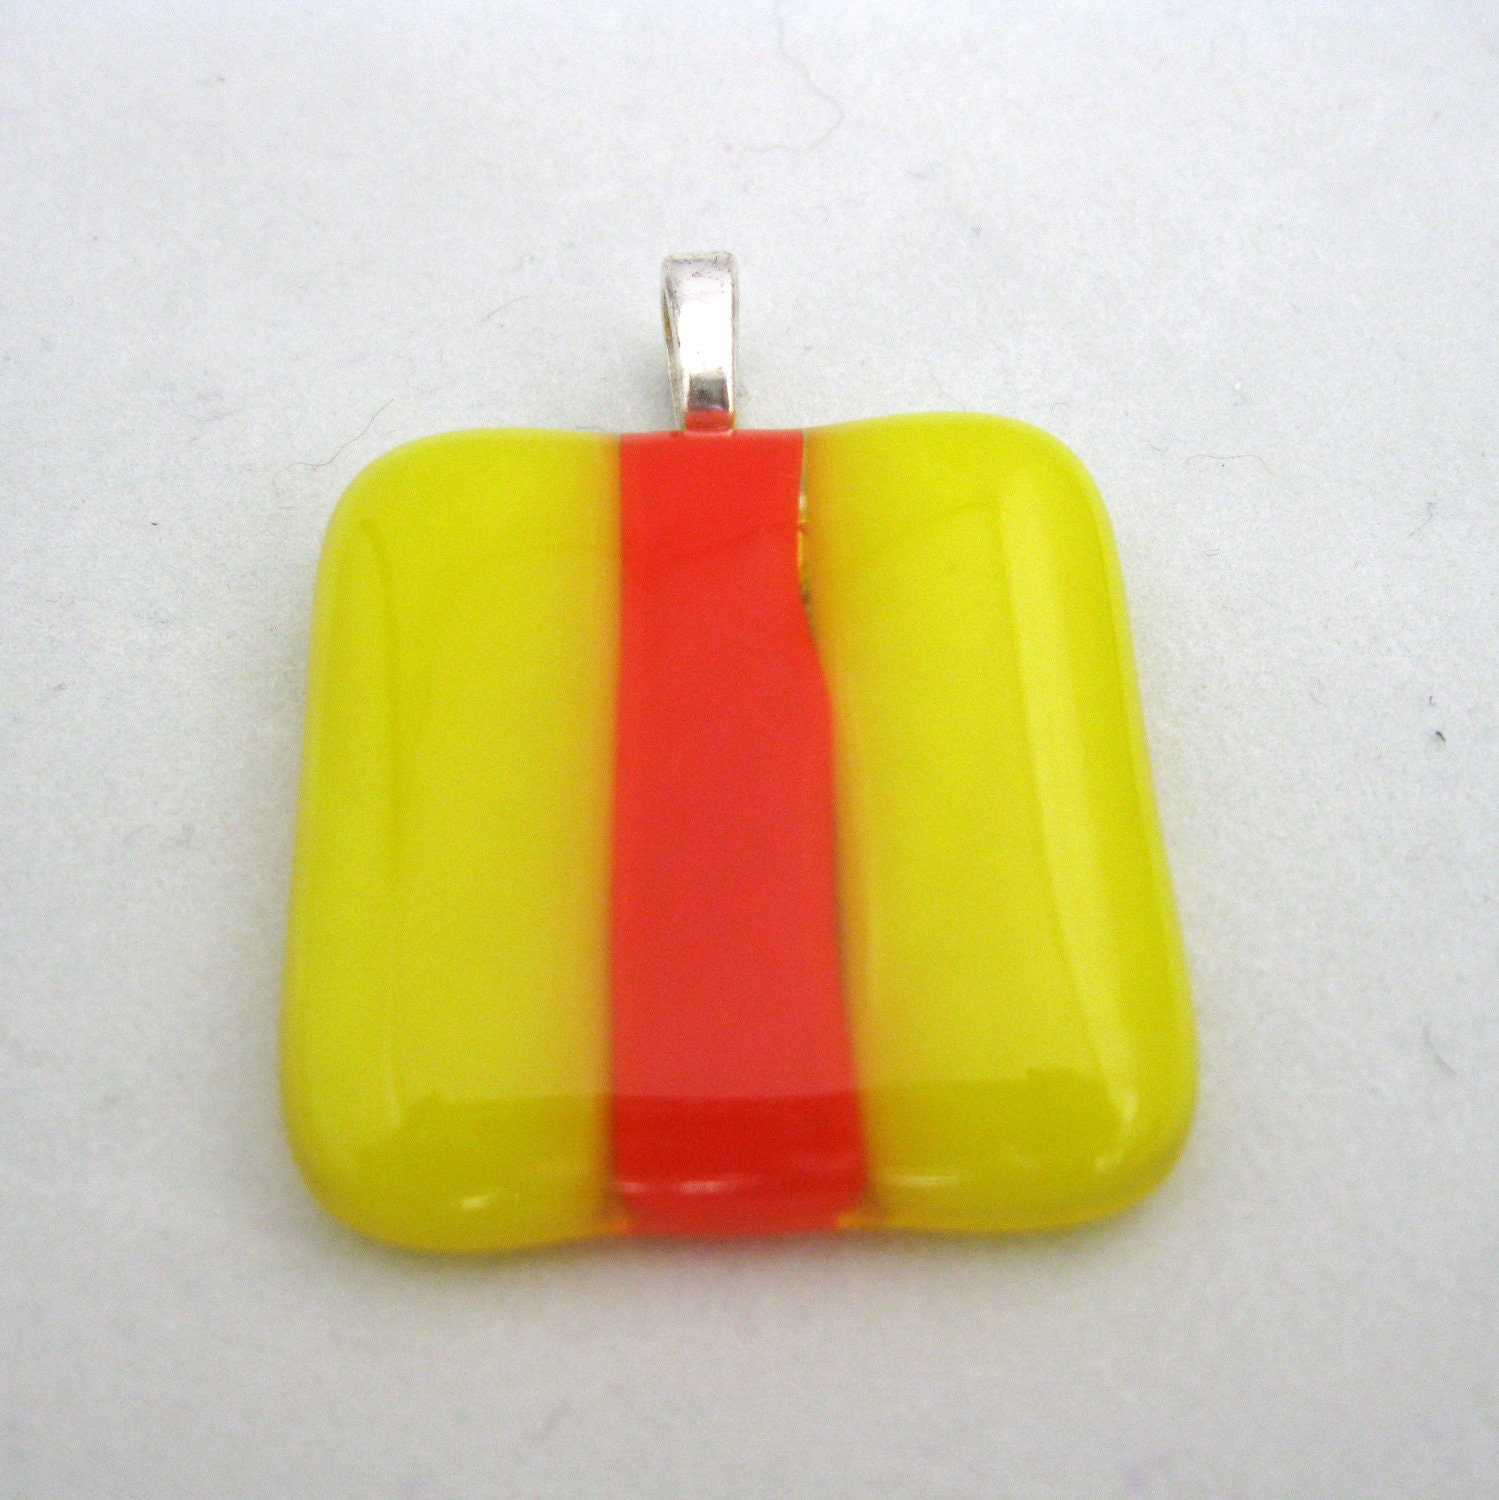 bright yellow red jewelry - Surfer, red and yellow, colorful, fused glass pendant, colorful necklace for summer - cjyummies